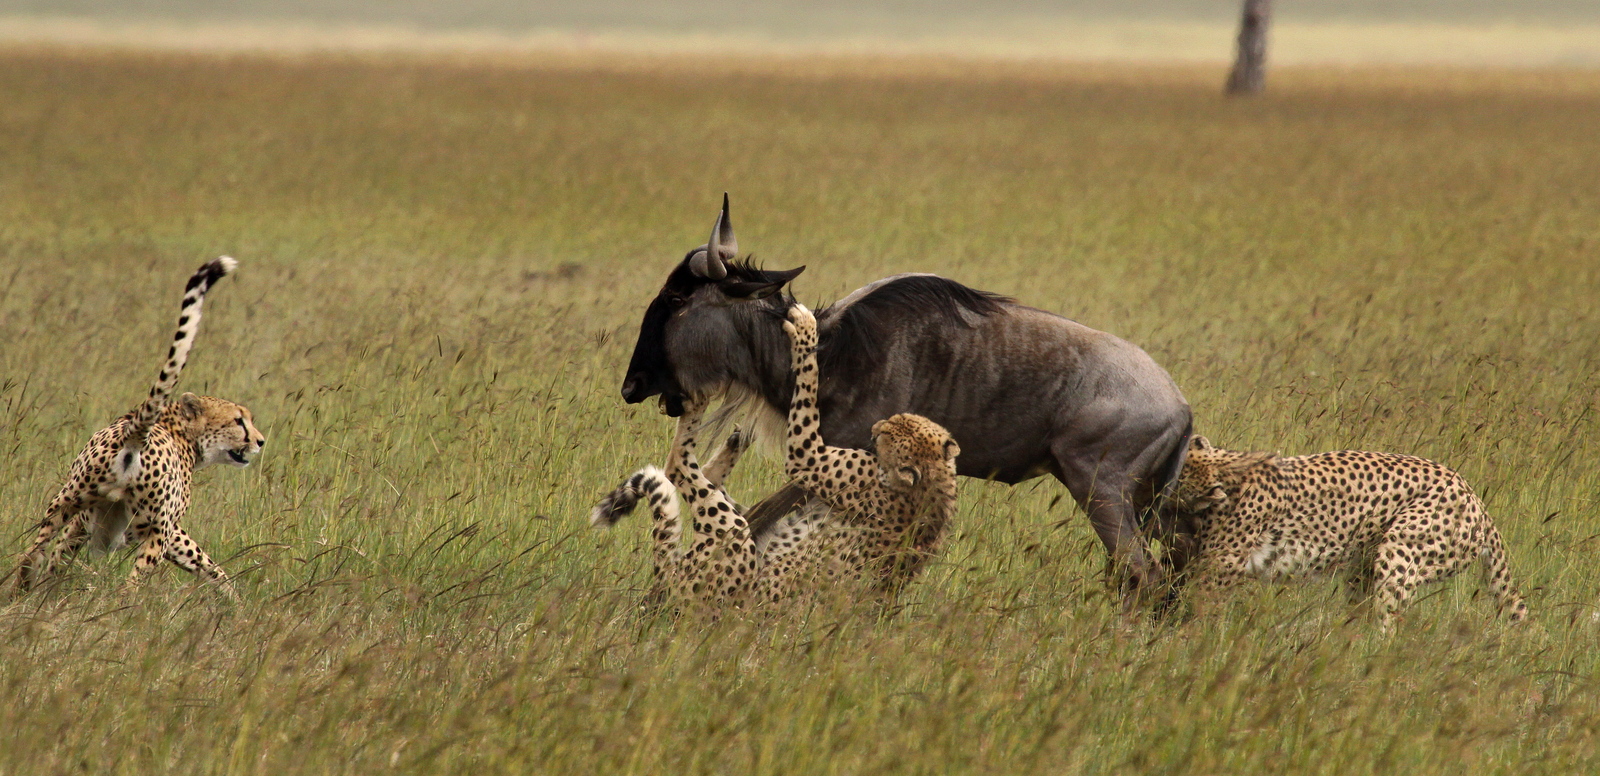 Cheetahs catch a wildebeest on the Serengeti